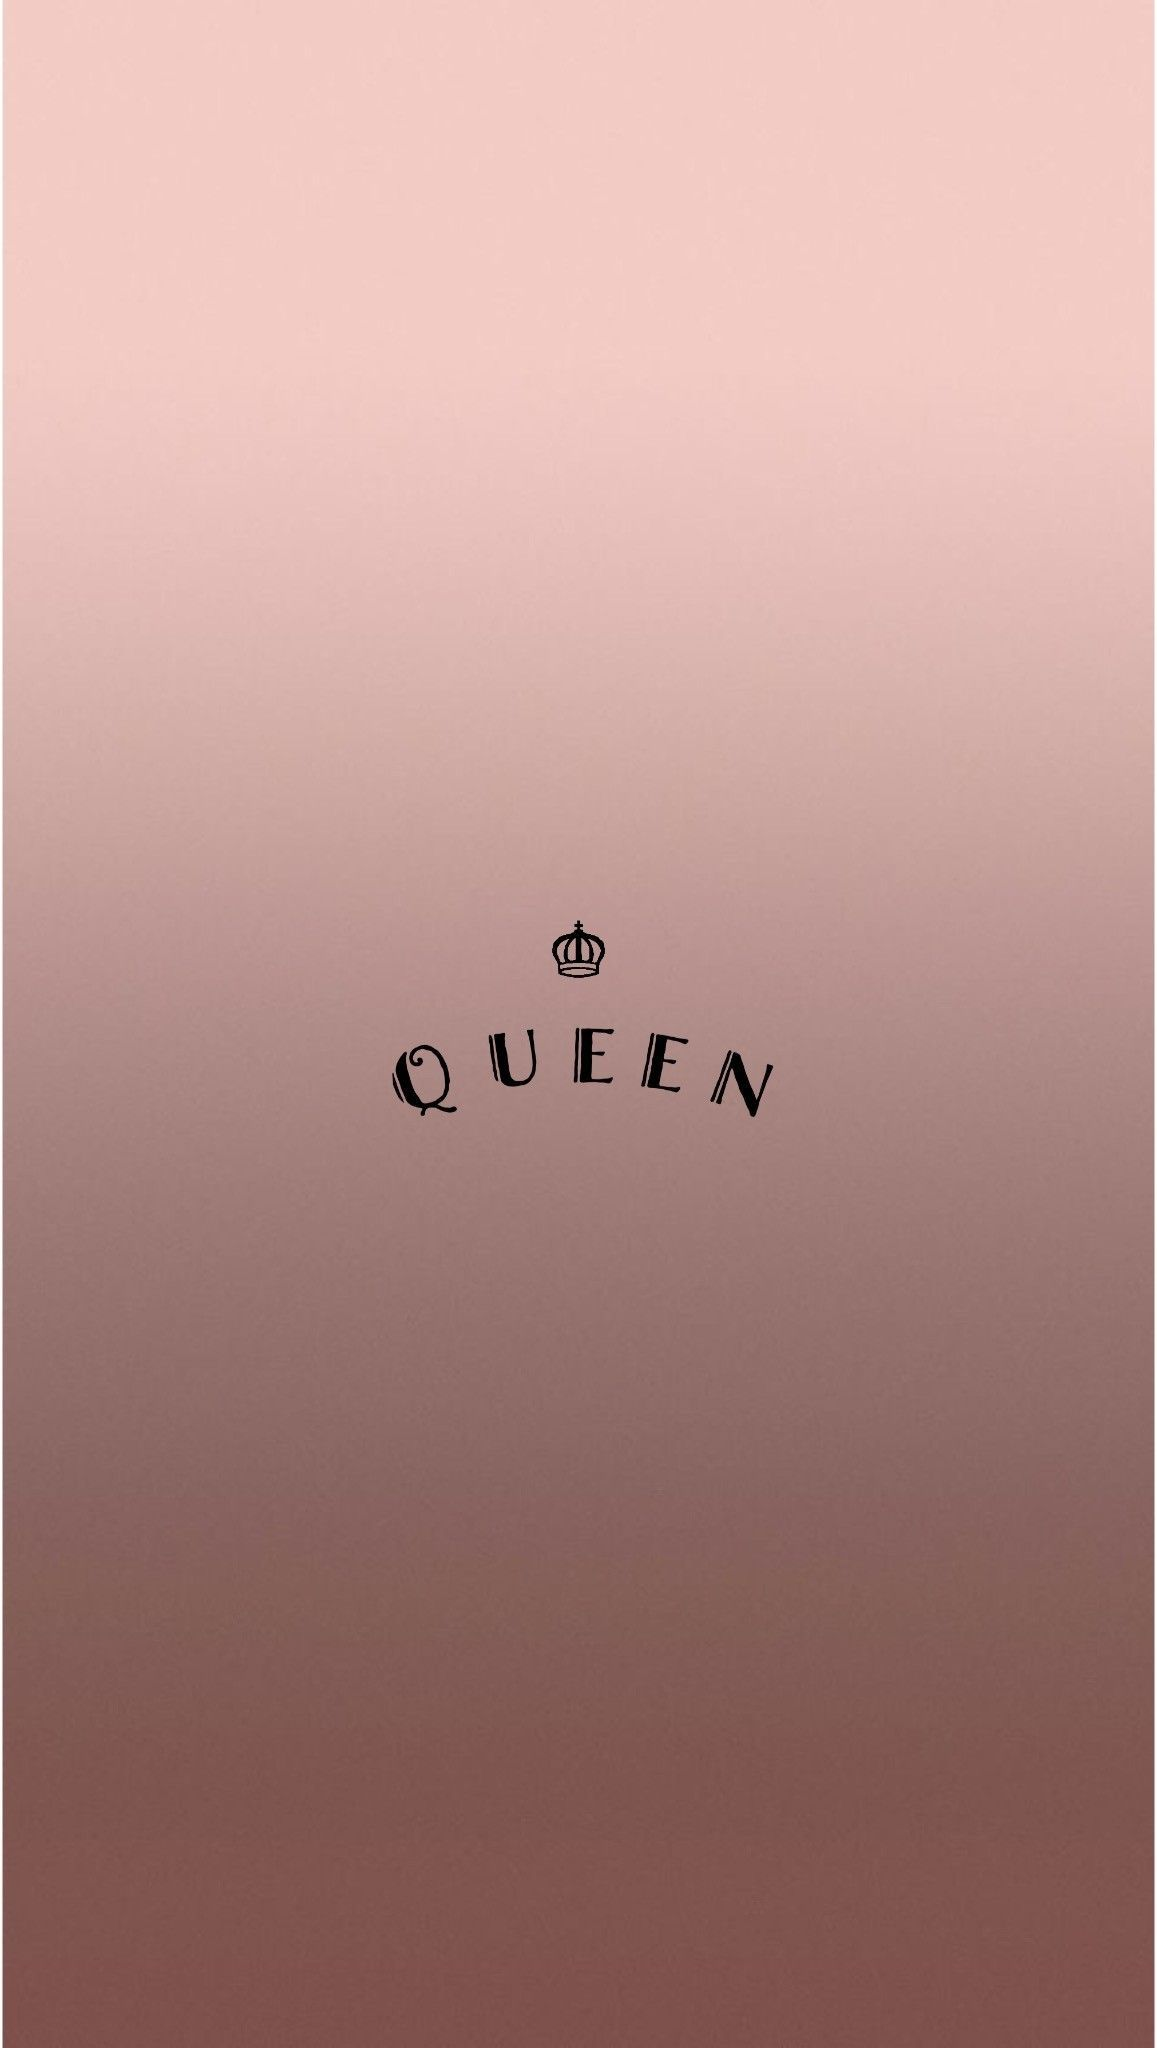 Rose Gold Aesthetic Wallpapers Top Free Rose Gold Aesthetic Backgrounds Wallpaperaccess In 2020 Cute Iphone Wallpaper Tumblr Queens Wallpaper Rose Gold Wallpaper